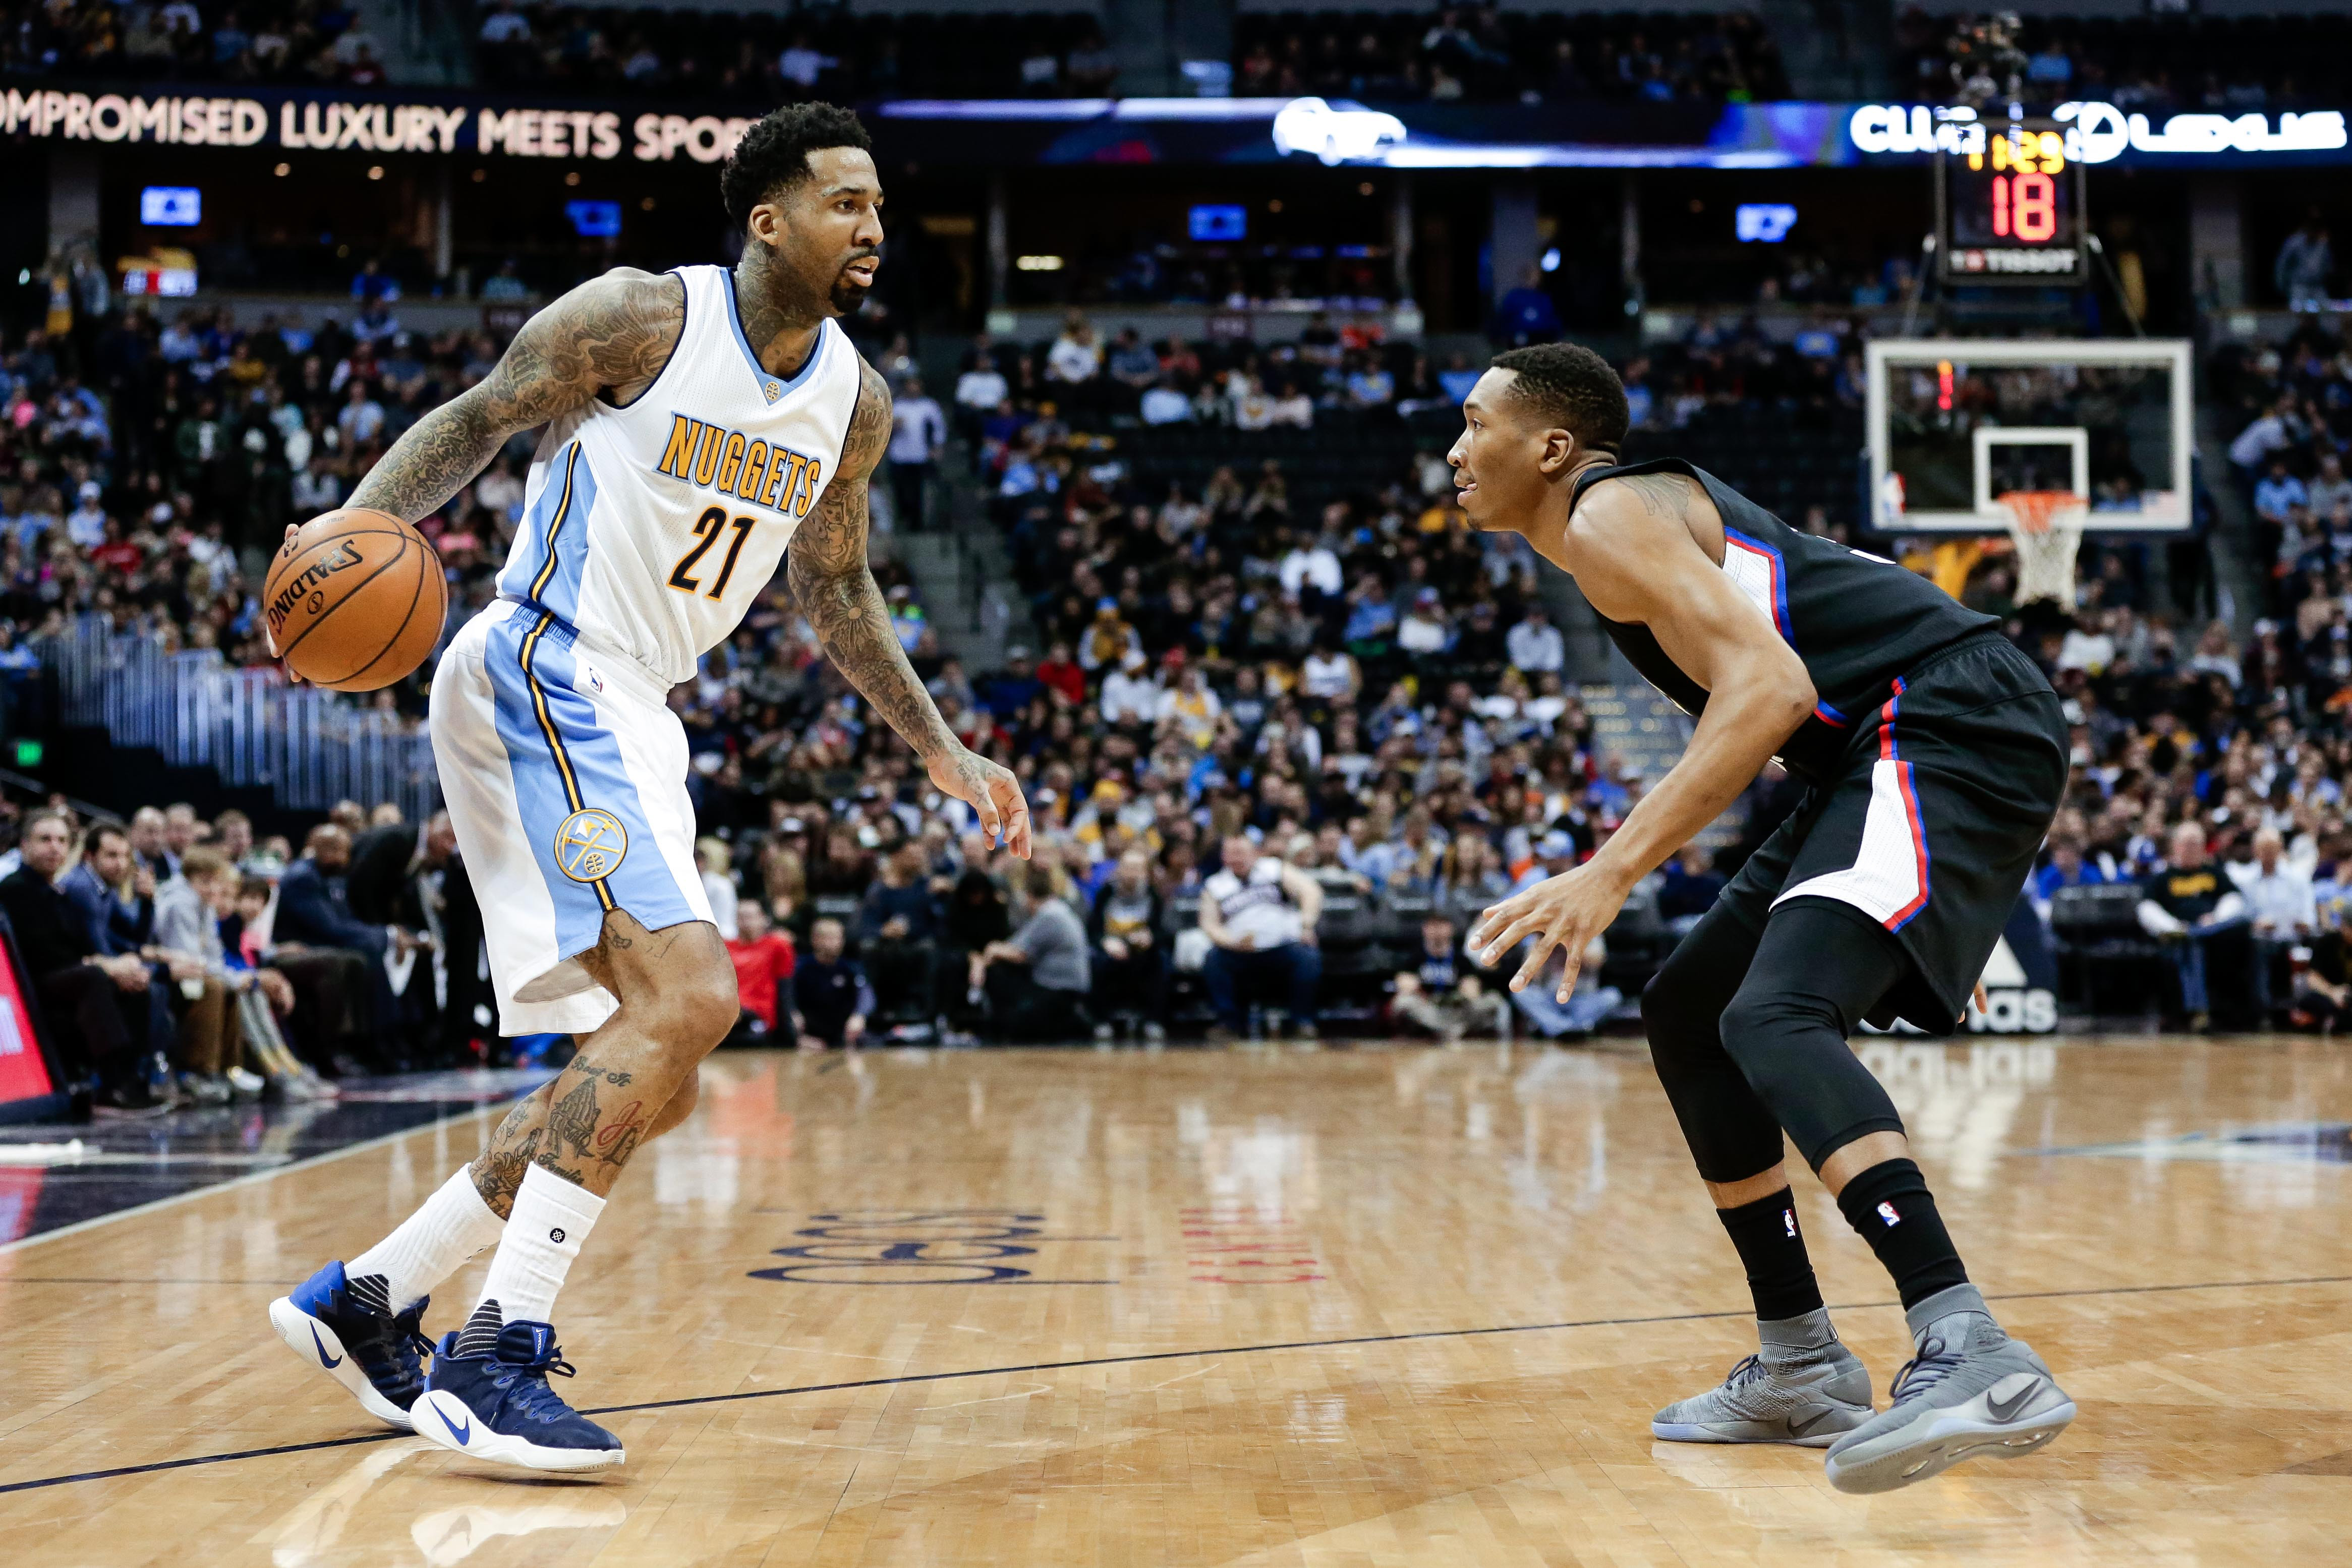 9829710-nba-los-angeles-clippers-at-denver-nuggets